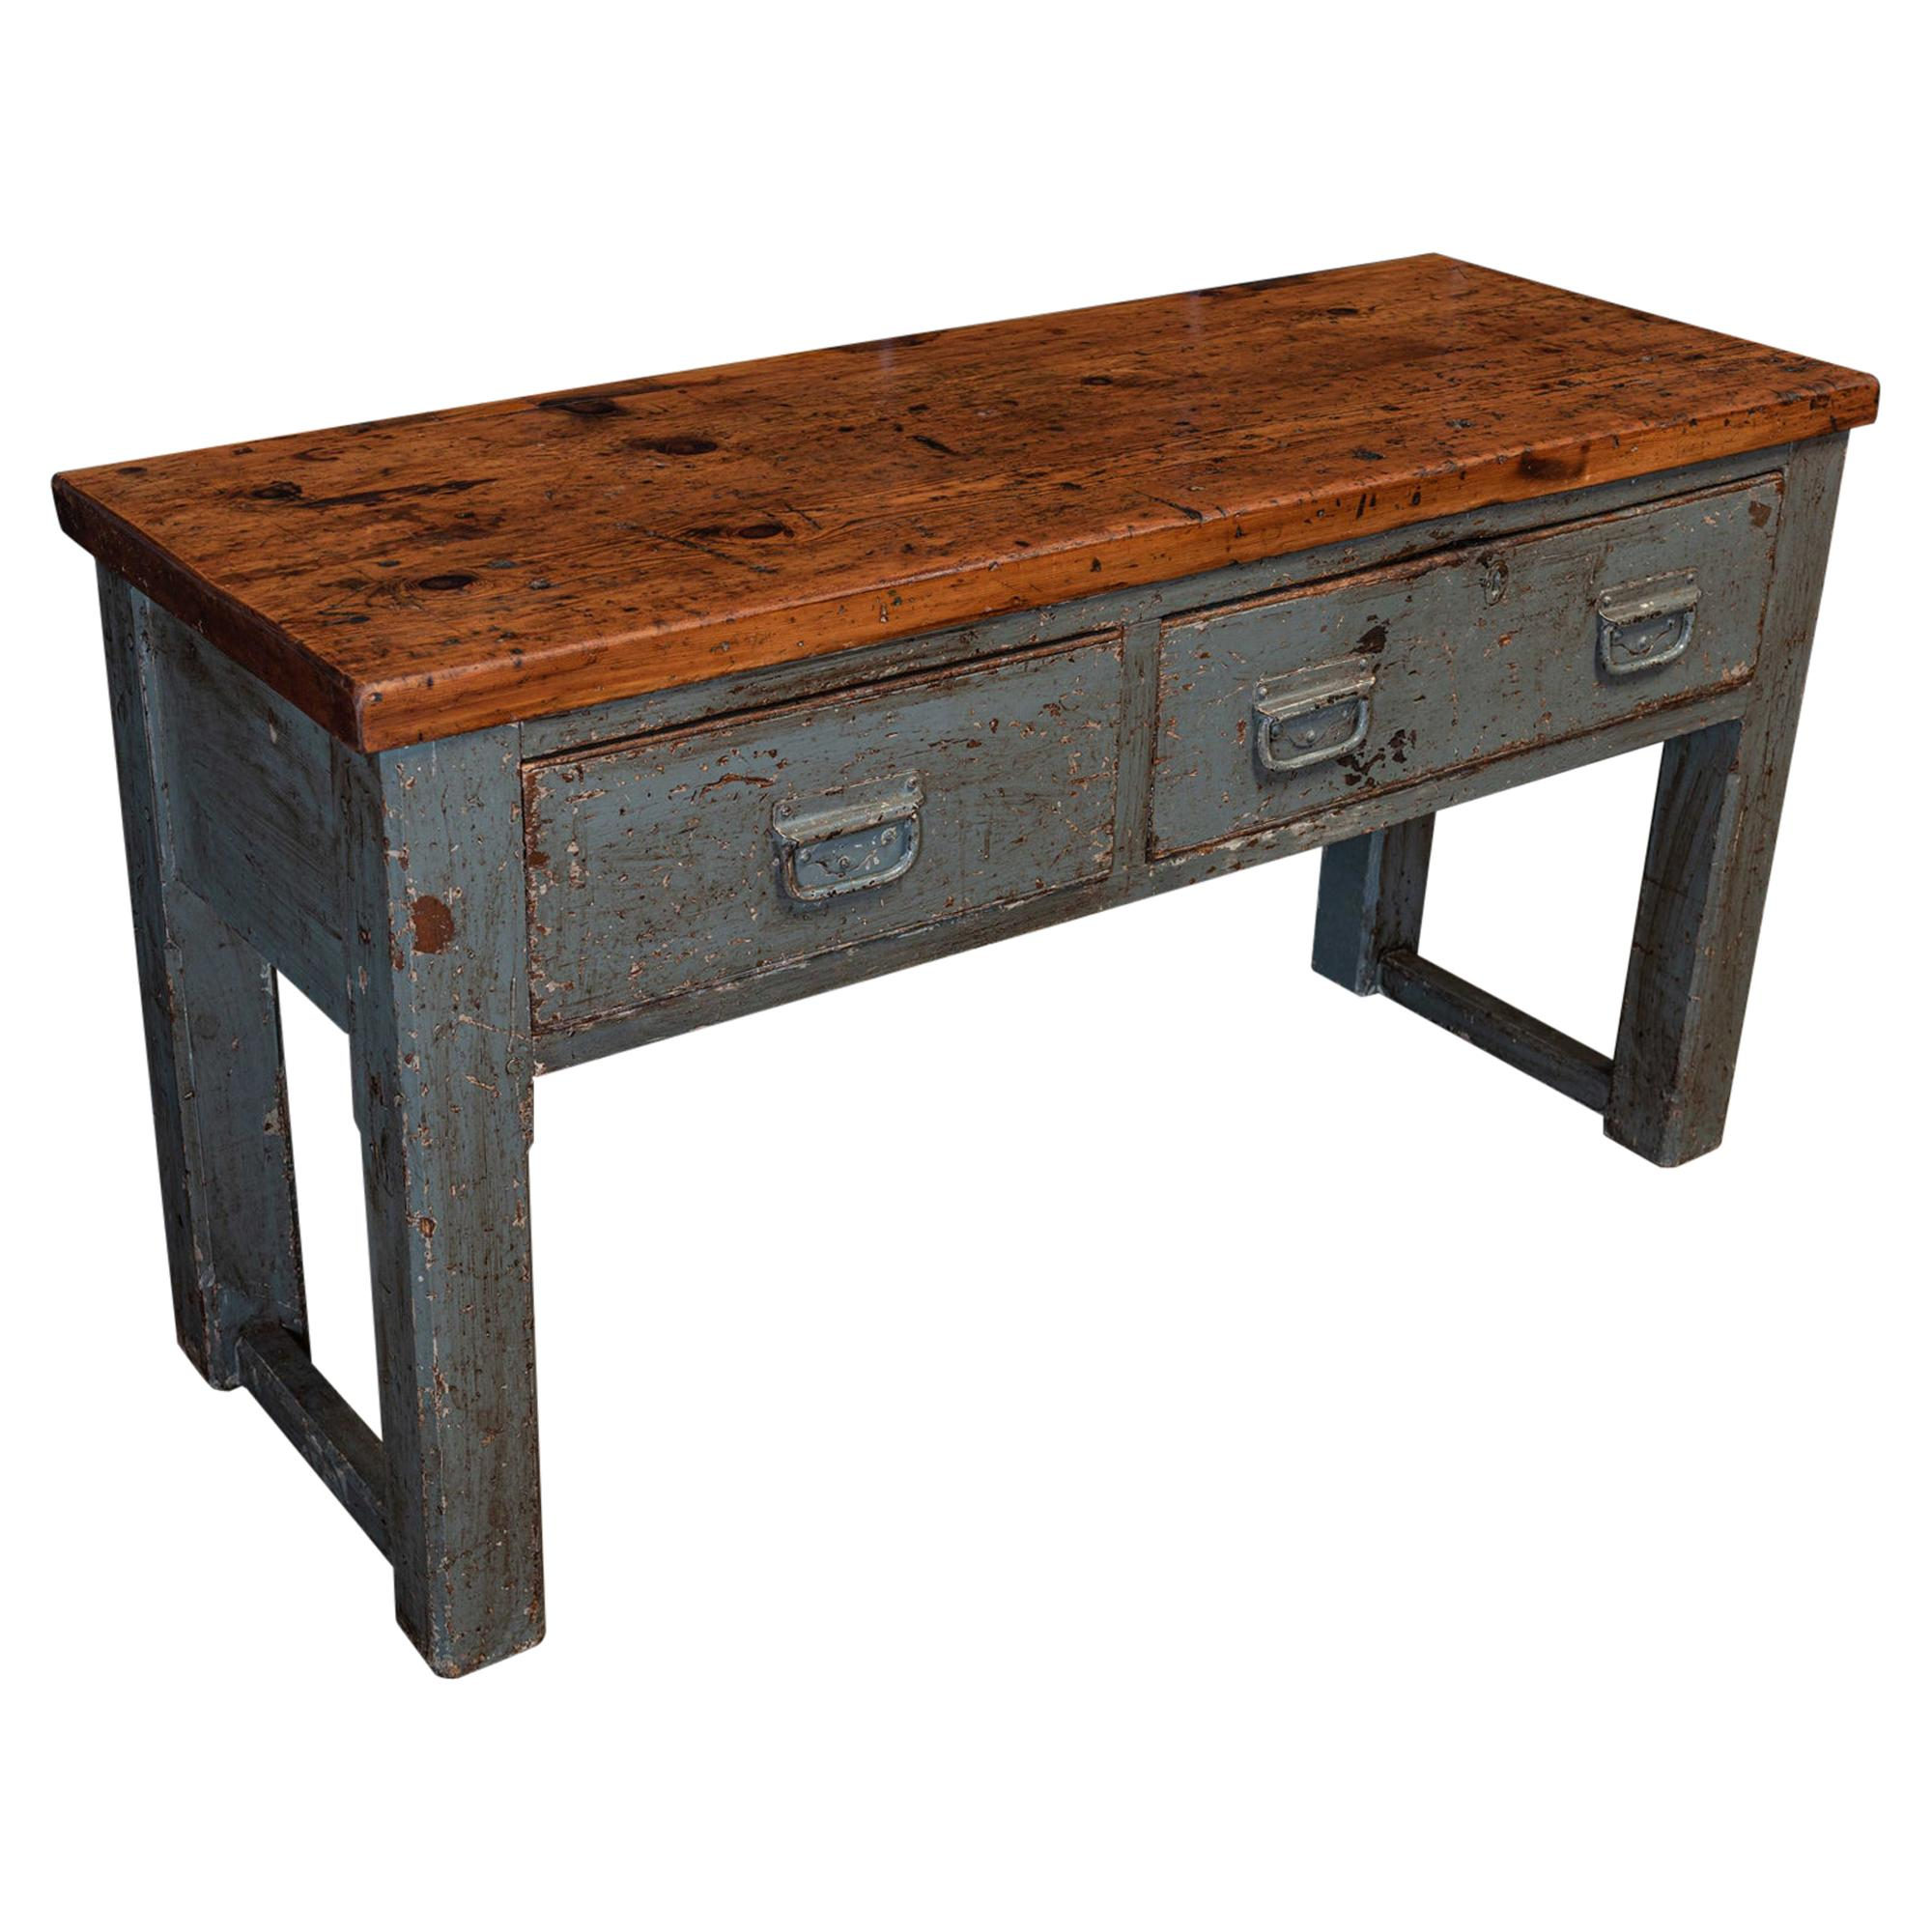 English Grey Painted Workshop Table or Kitchen counter